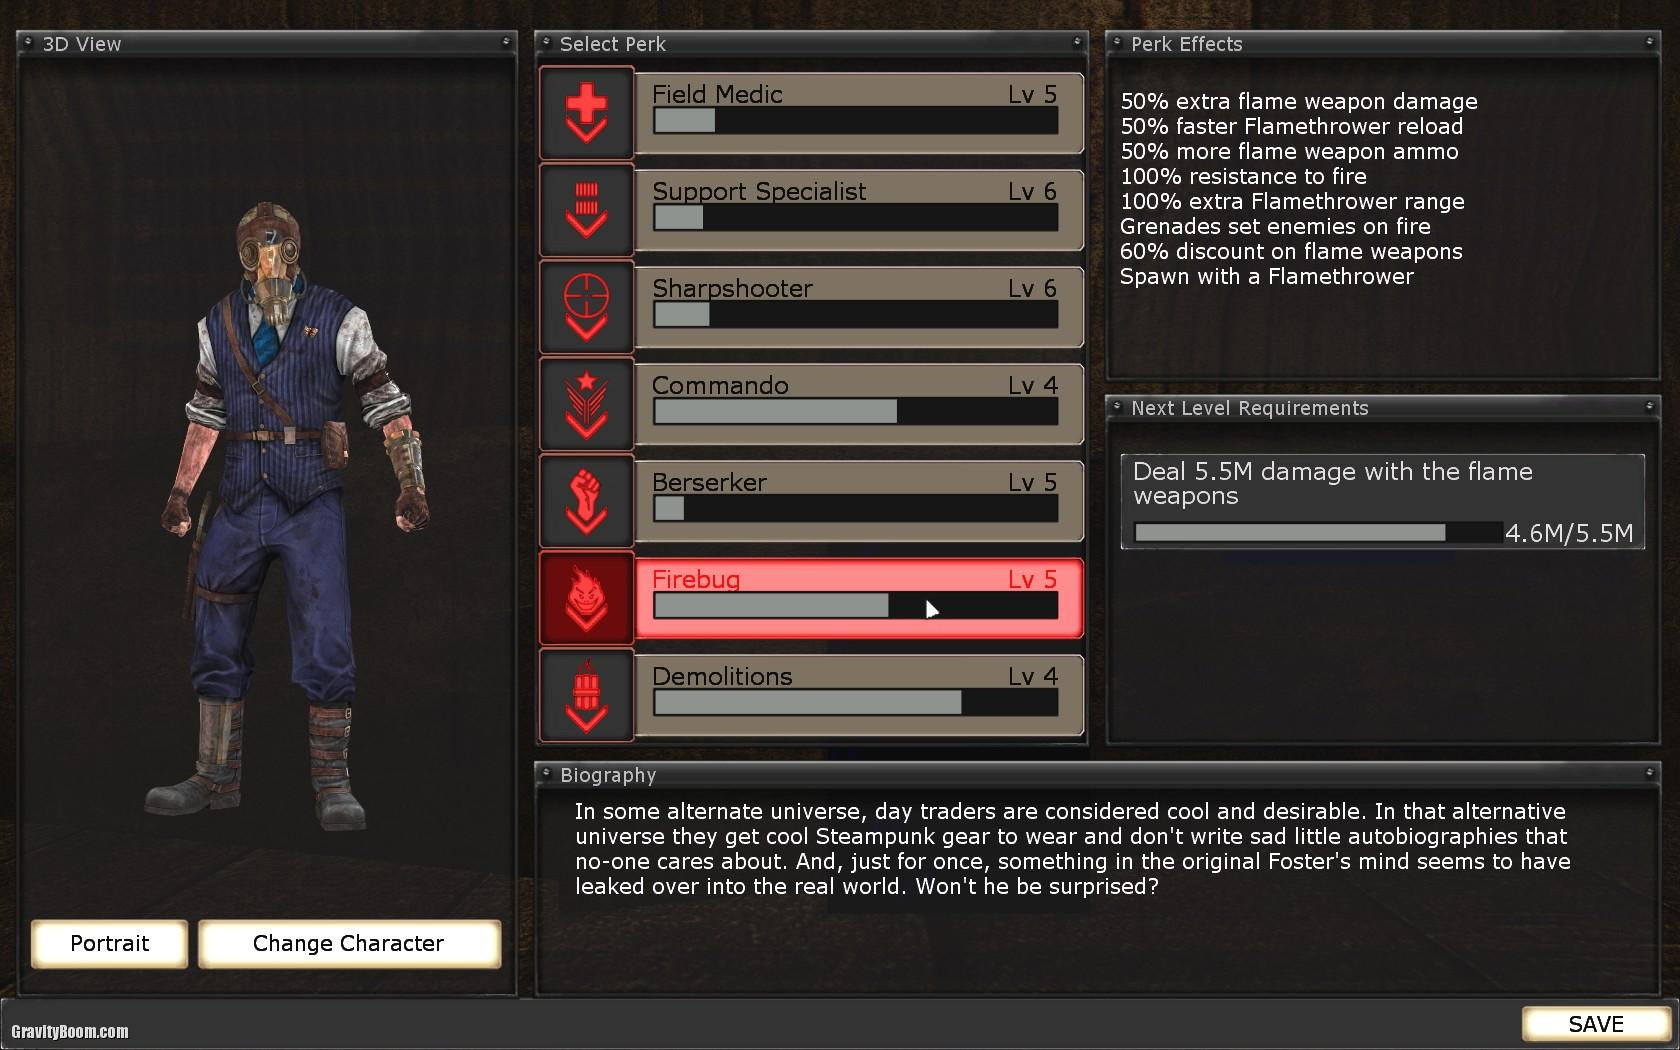 Charming Killing Floor Tips Perks